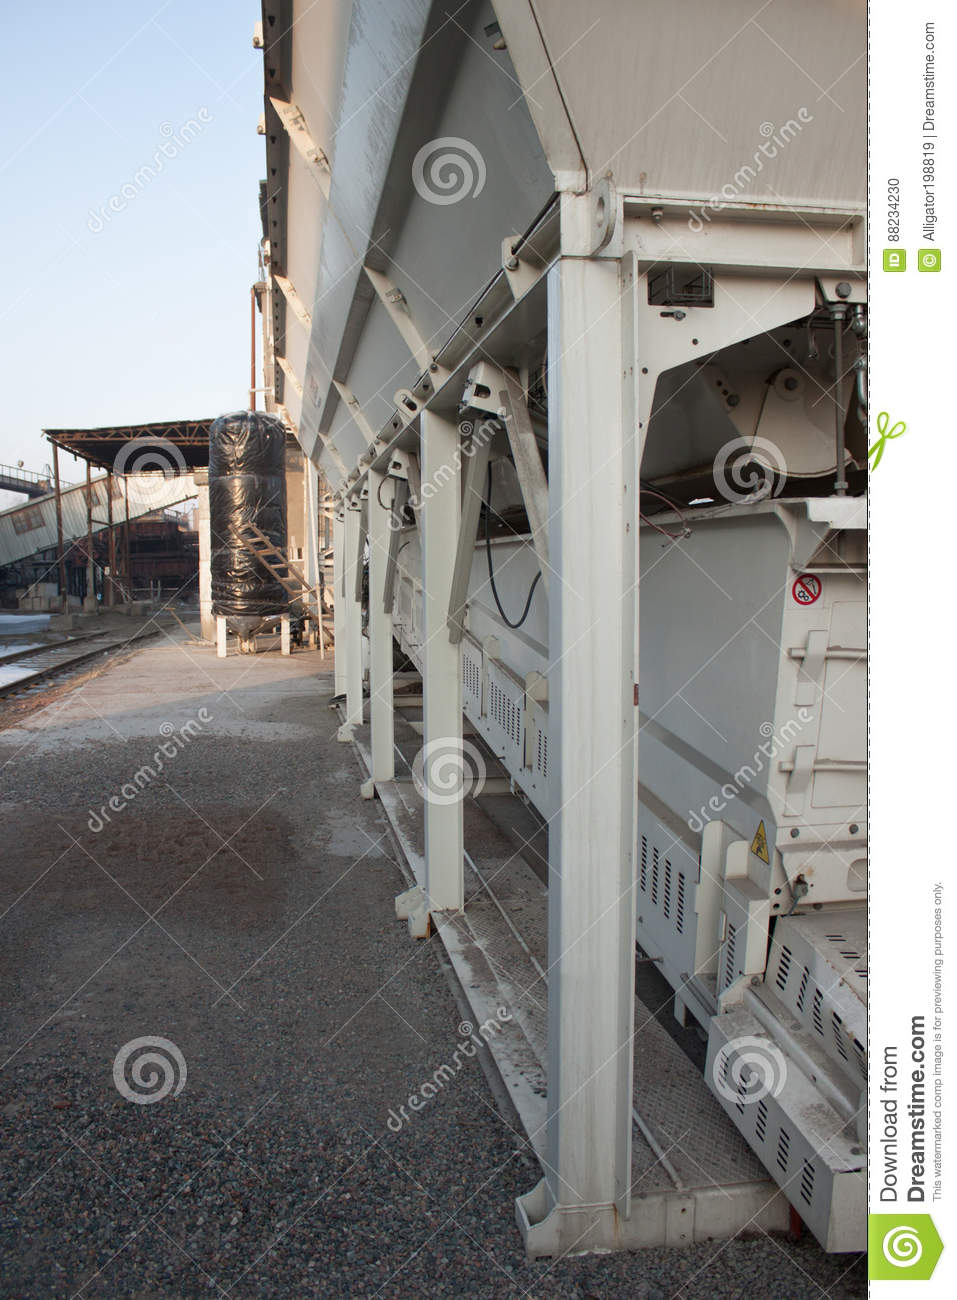 Small Concrete Batching Plant Stock Photo - Image of construction